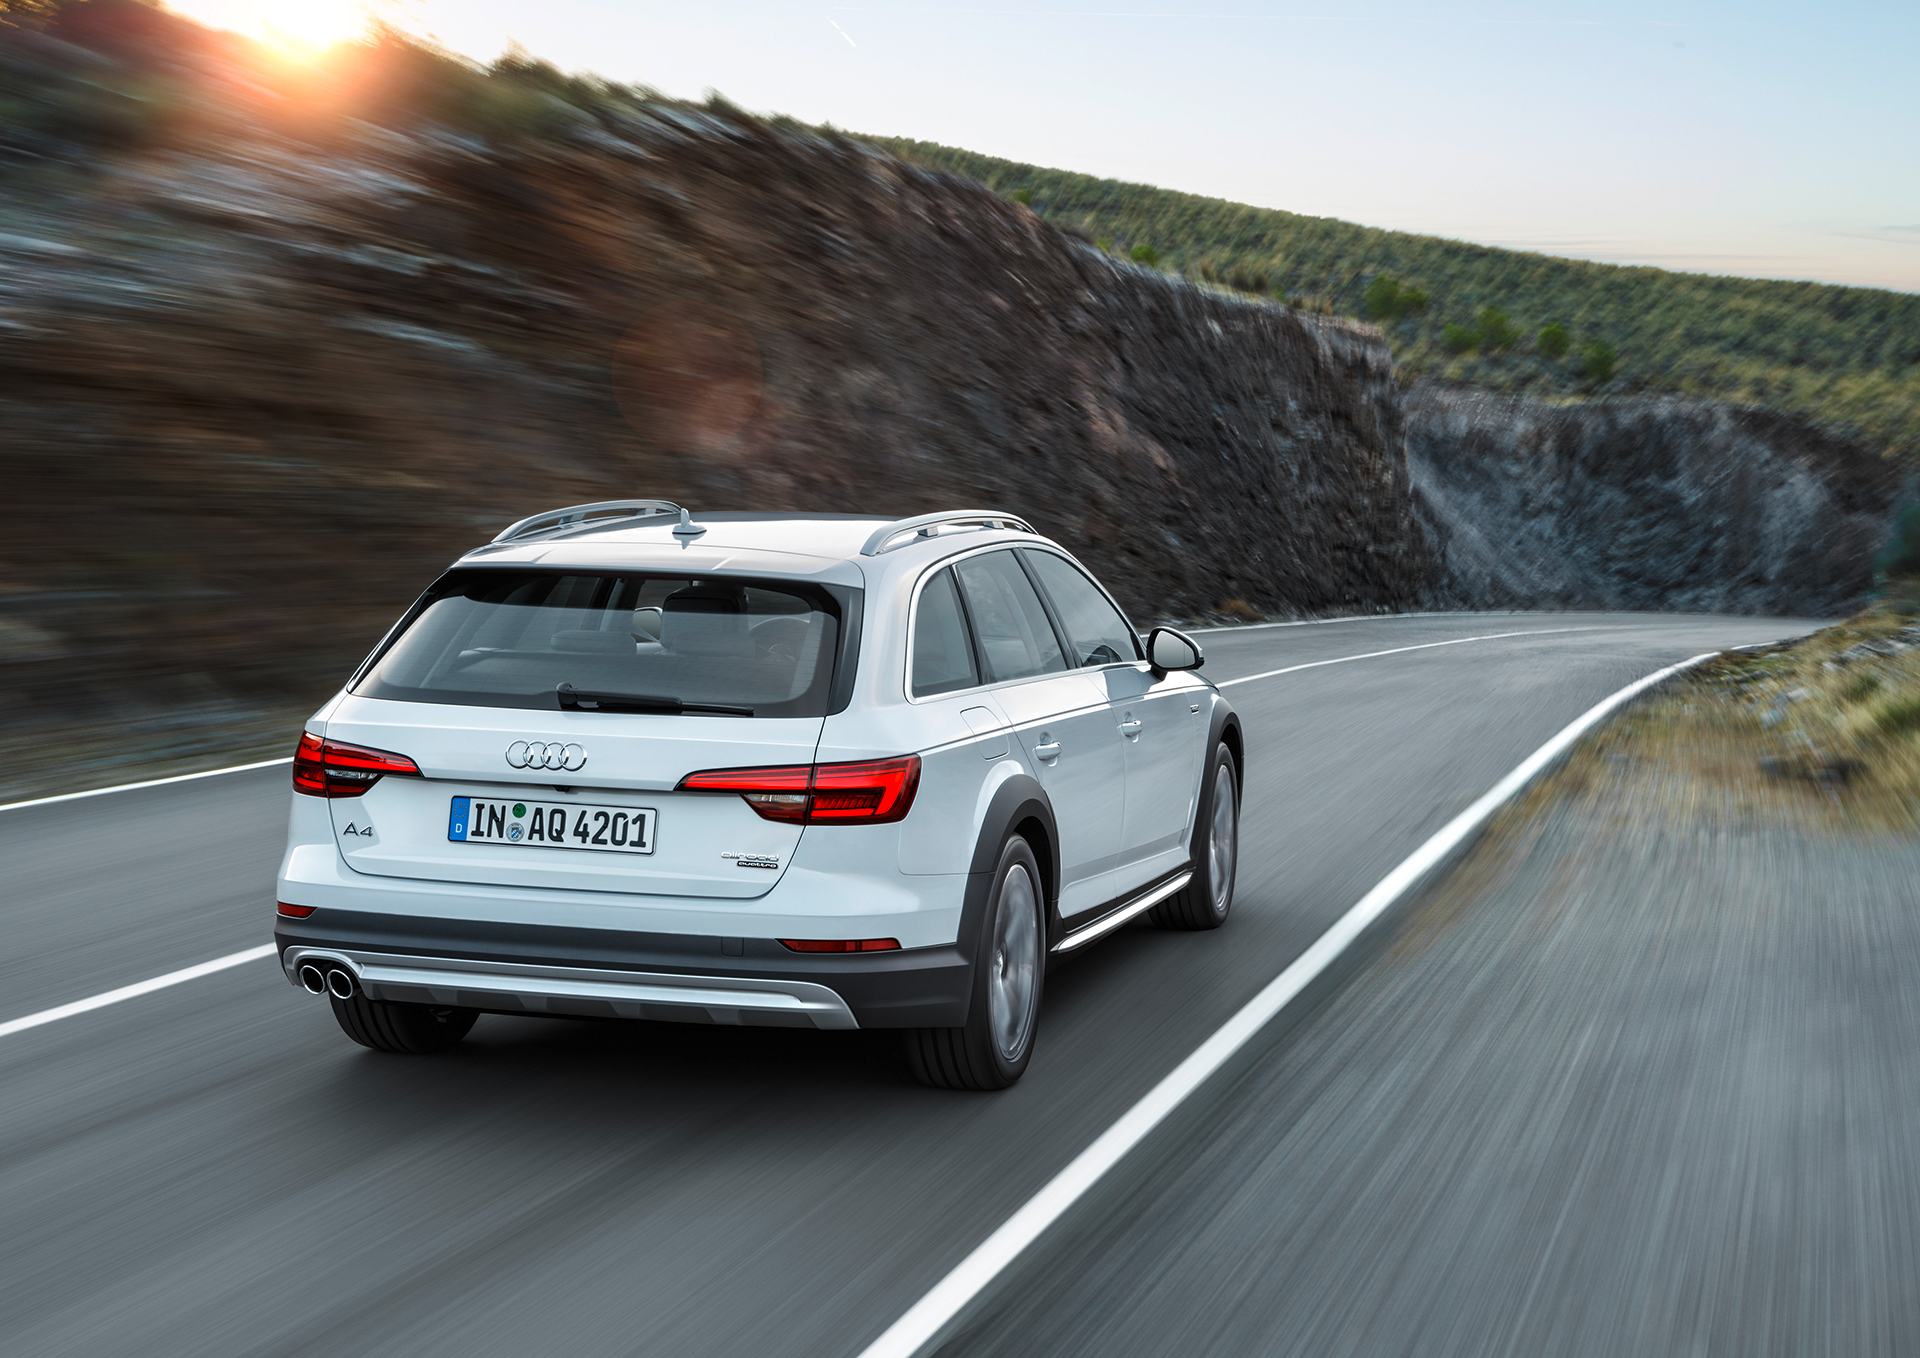 Audi A4 allroad quattro - 2016 - route / road - photo